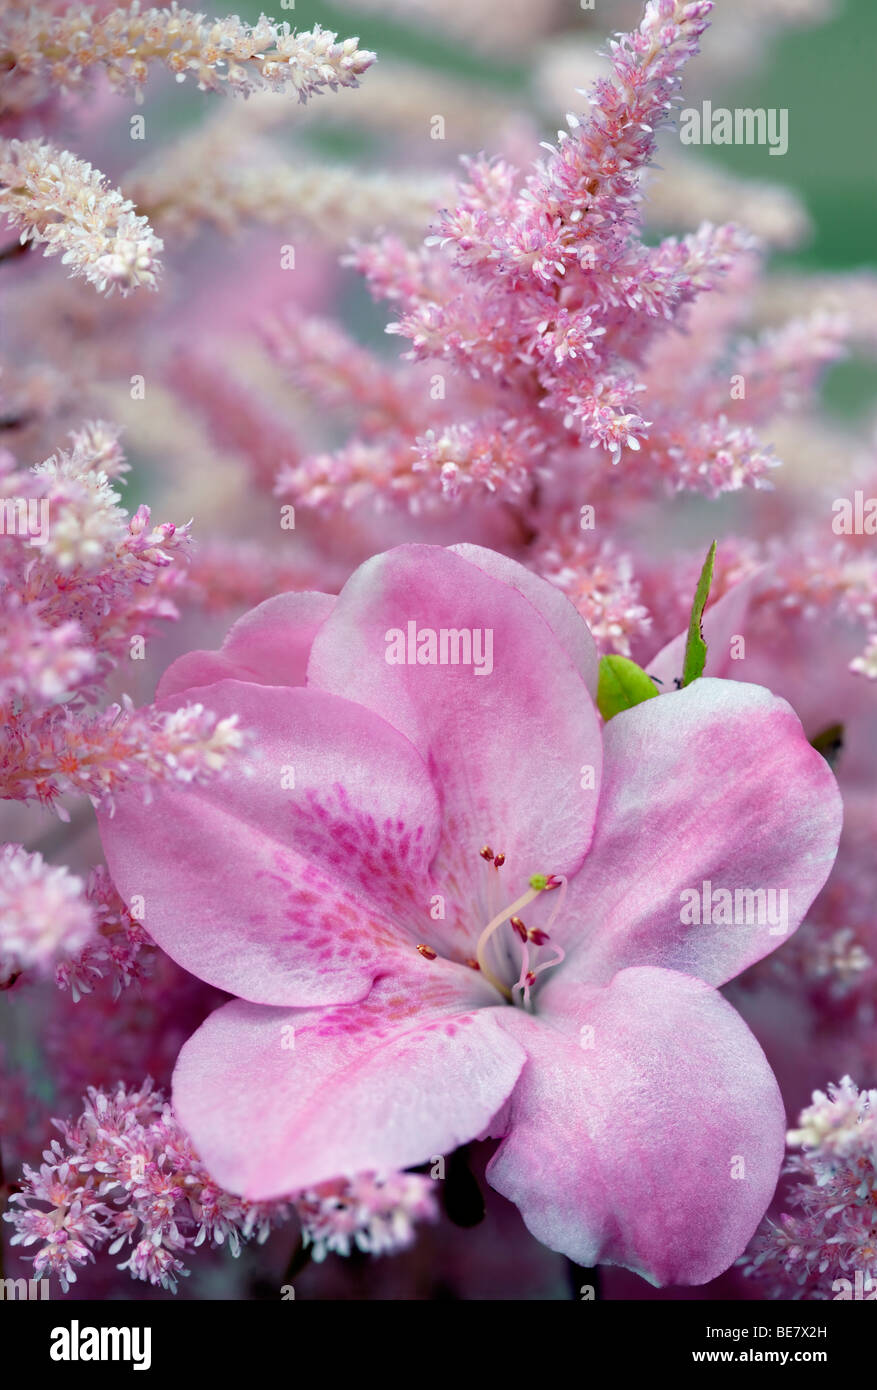 Rhododendron and Astilbe blossoms close up. Oregon - Stock Image